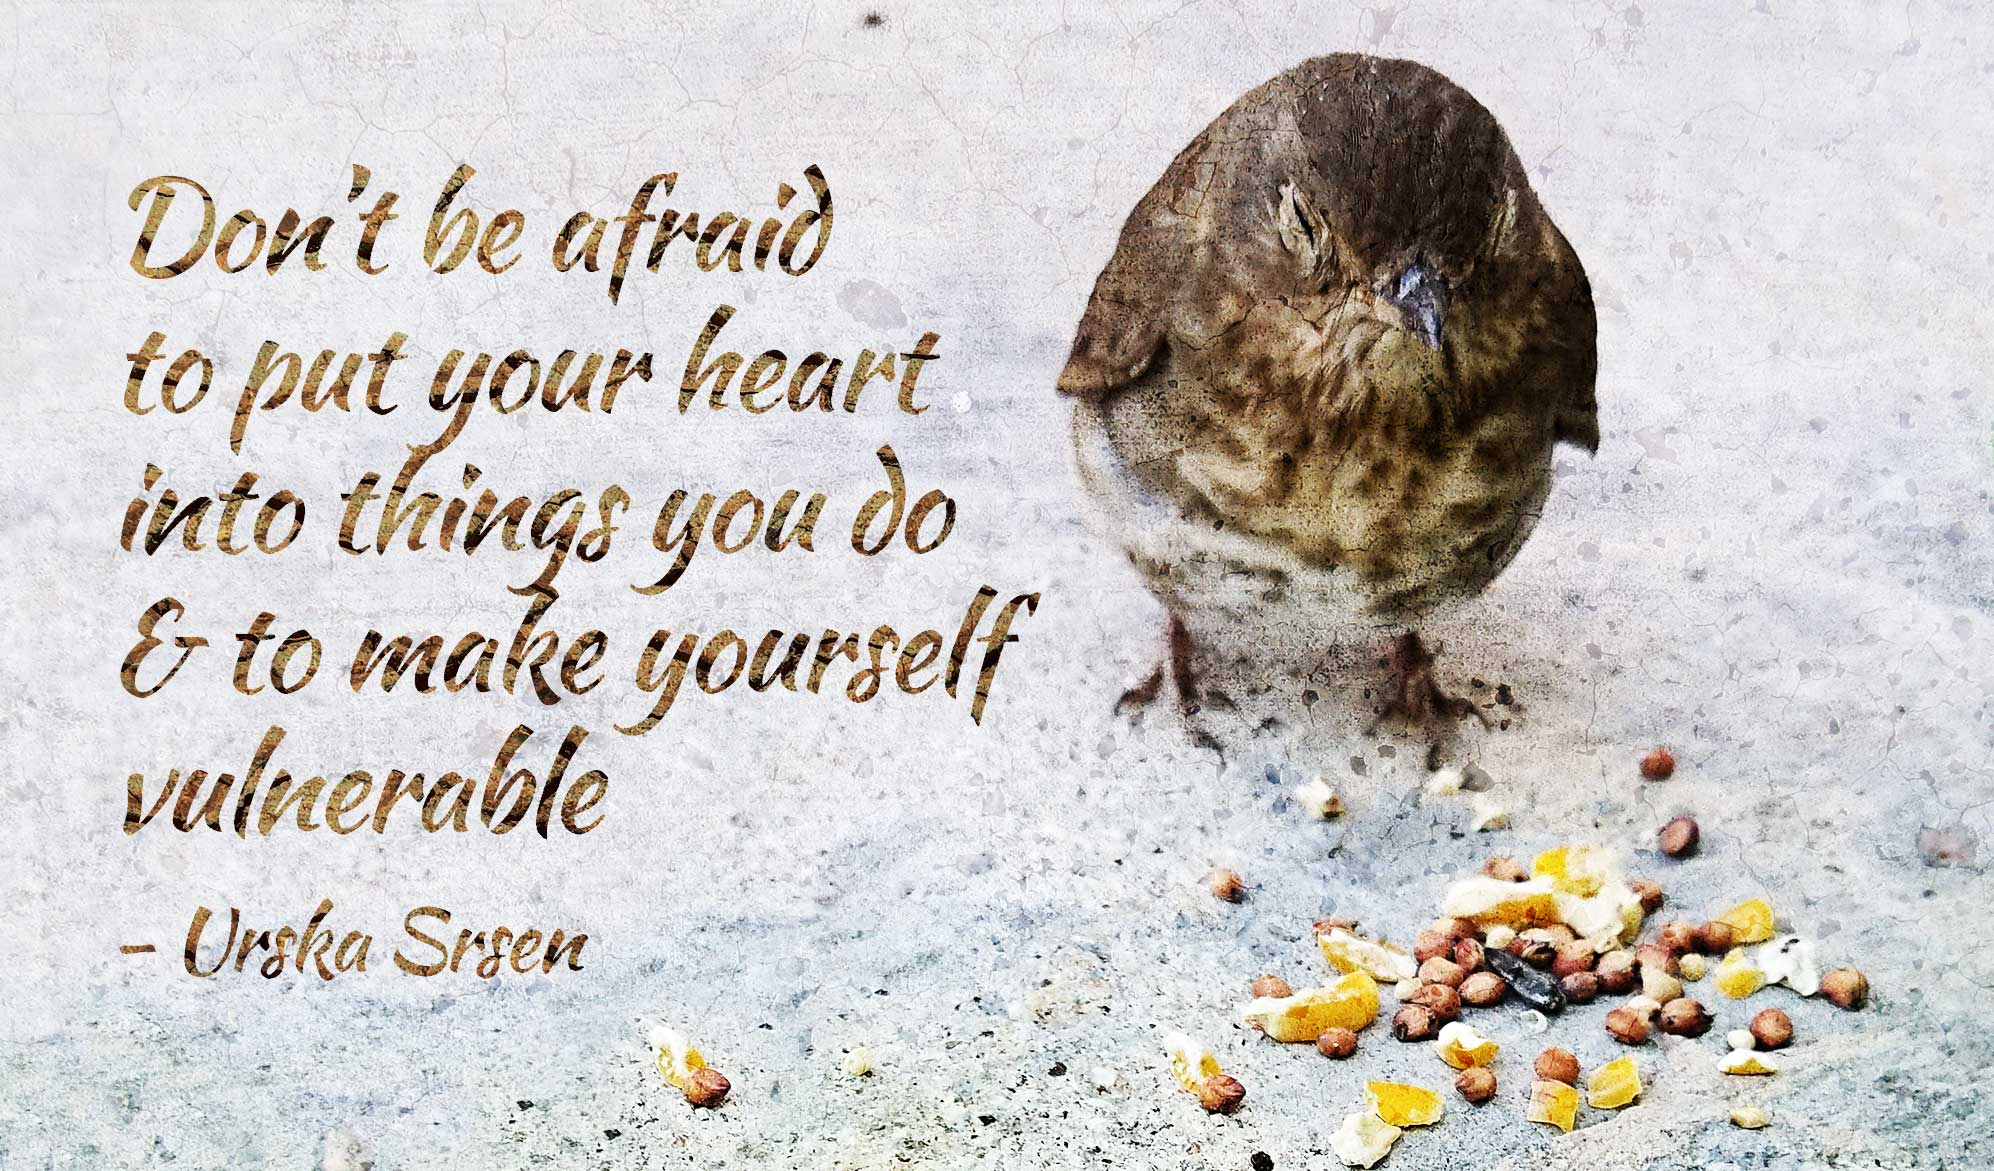 daily inspirational quote image: a hurt bird eating seeds